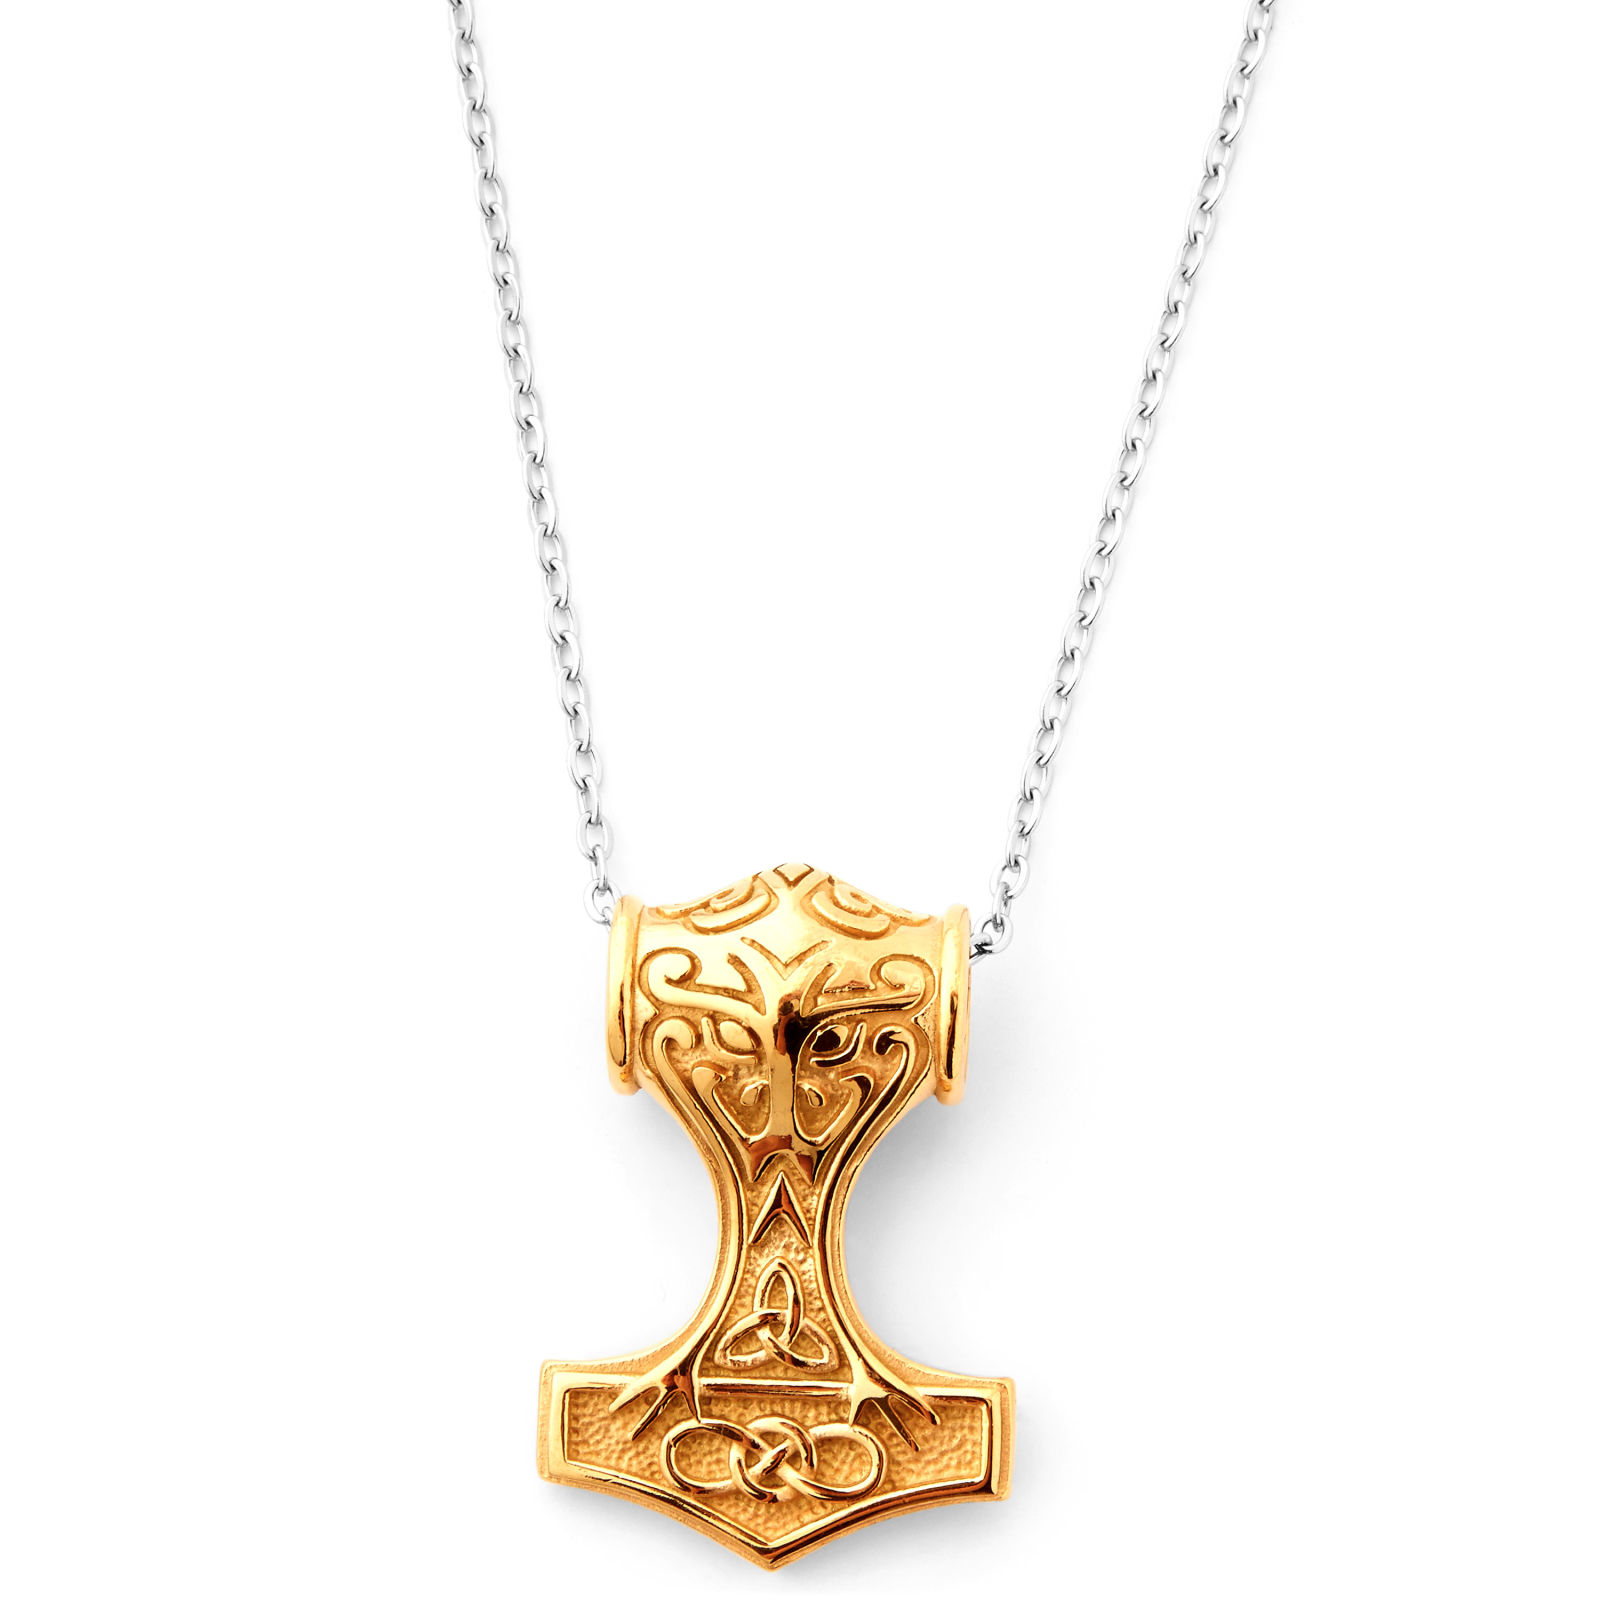 Thors Golden Hammer Necklace Trendhim pIsmN